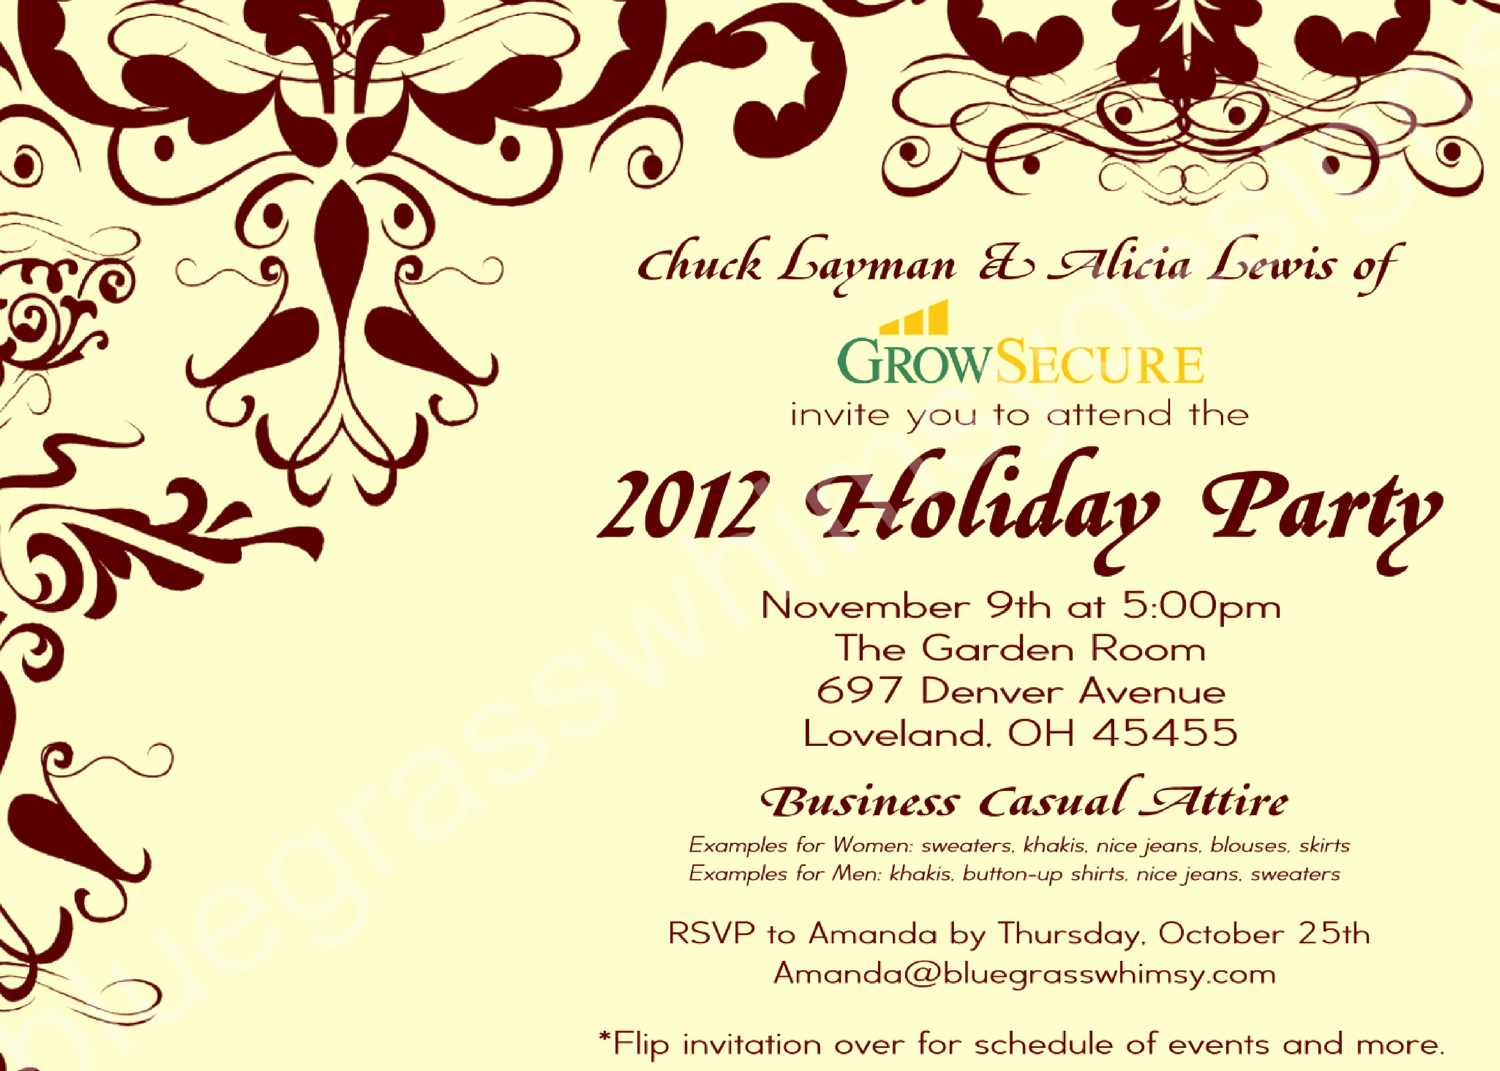 Work Christmas Party Invitation Beautiful Custom Corporate Holiday Party Invitation W Crimson Flourish